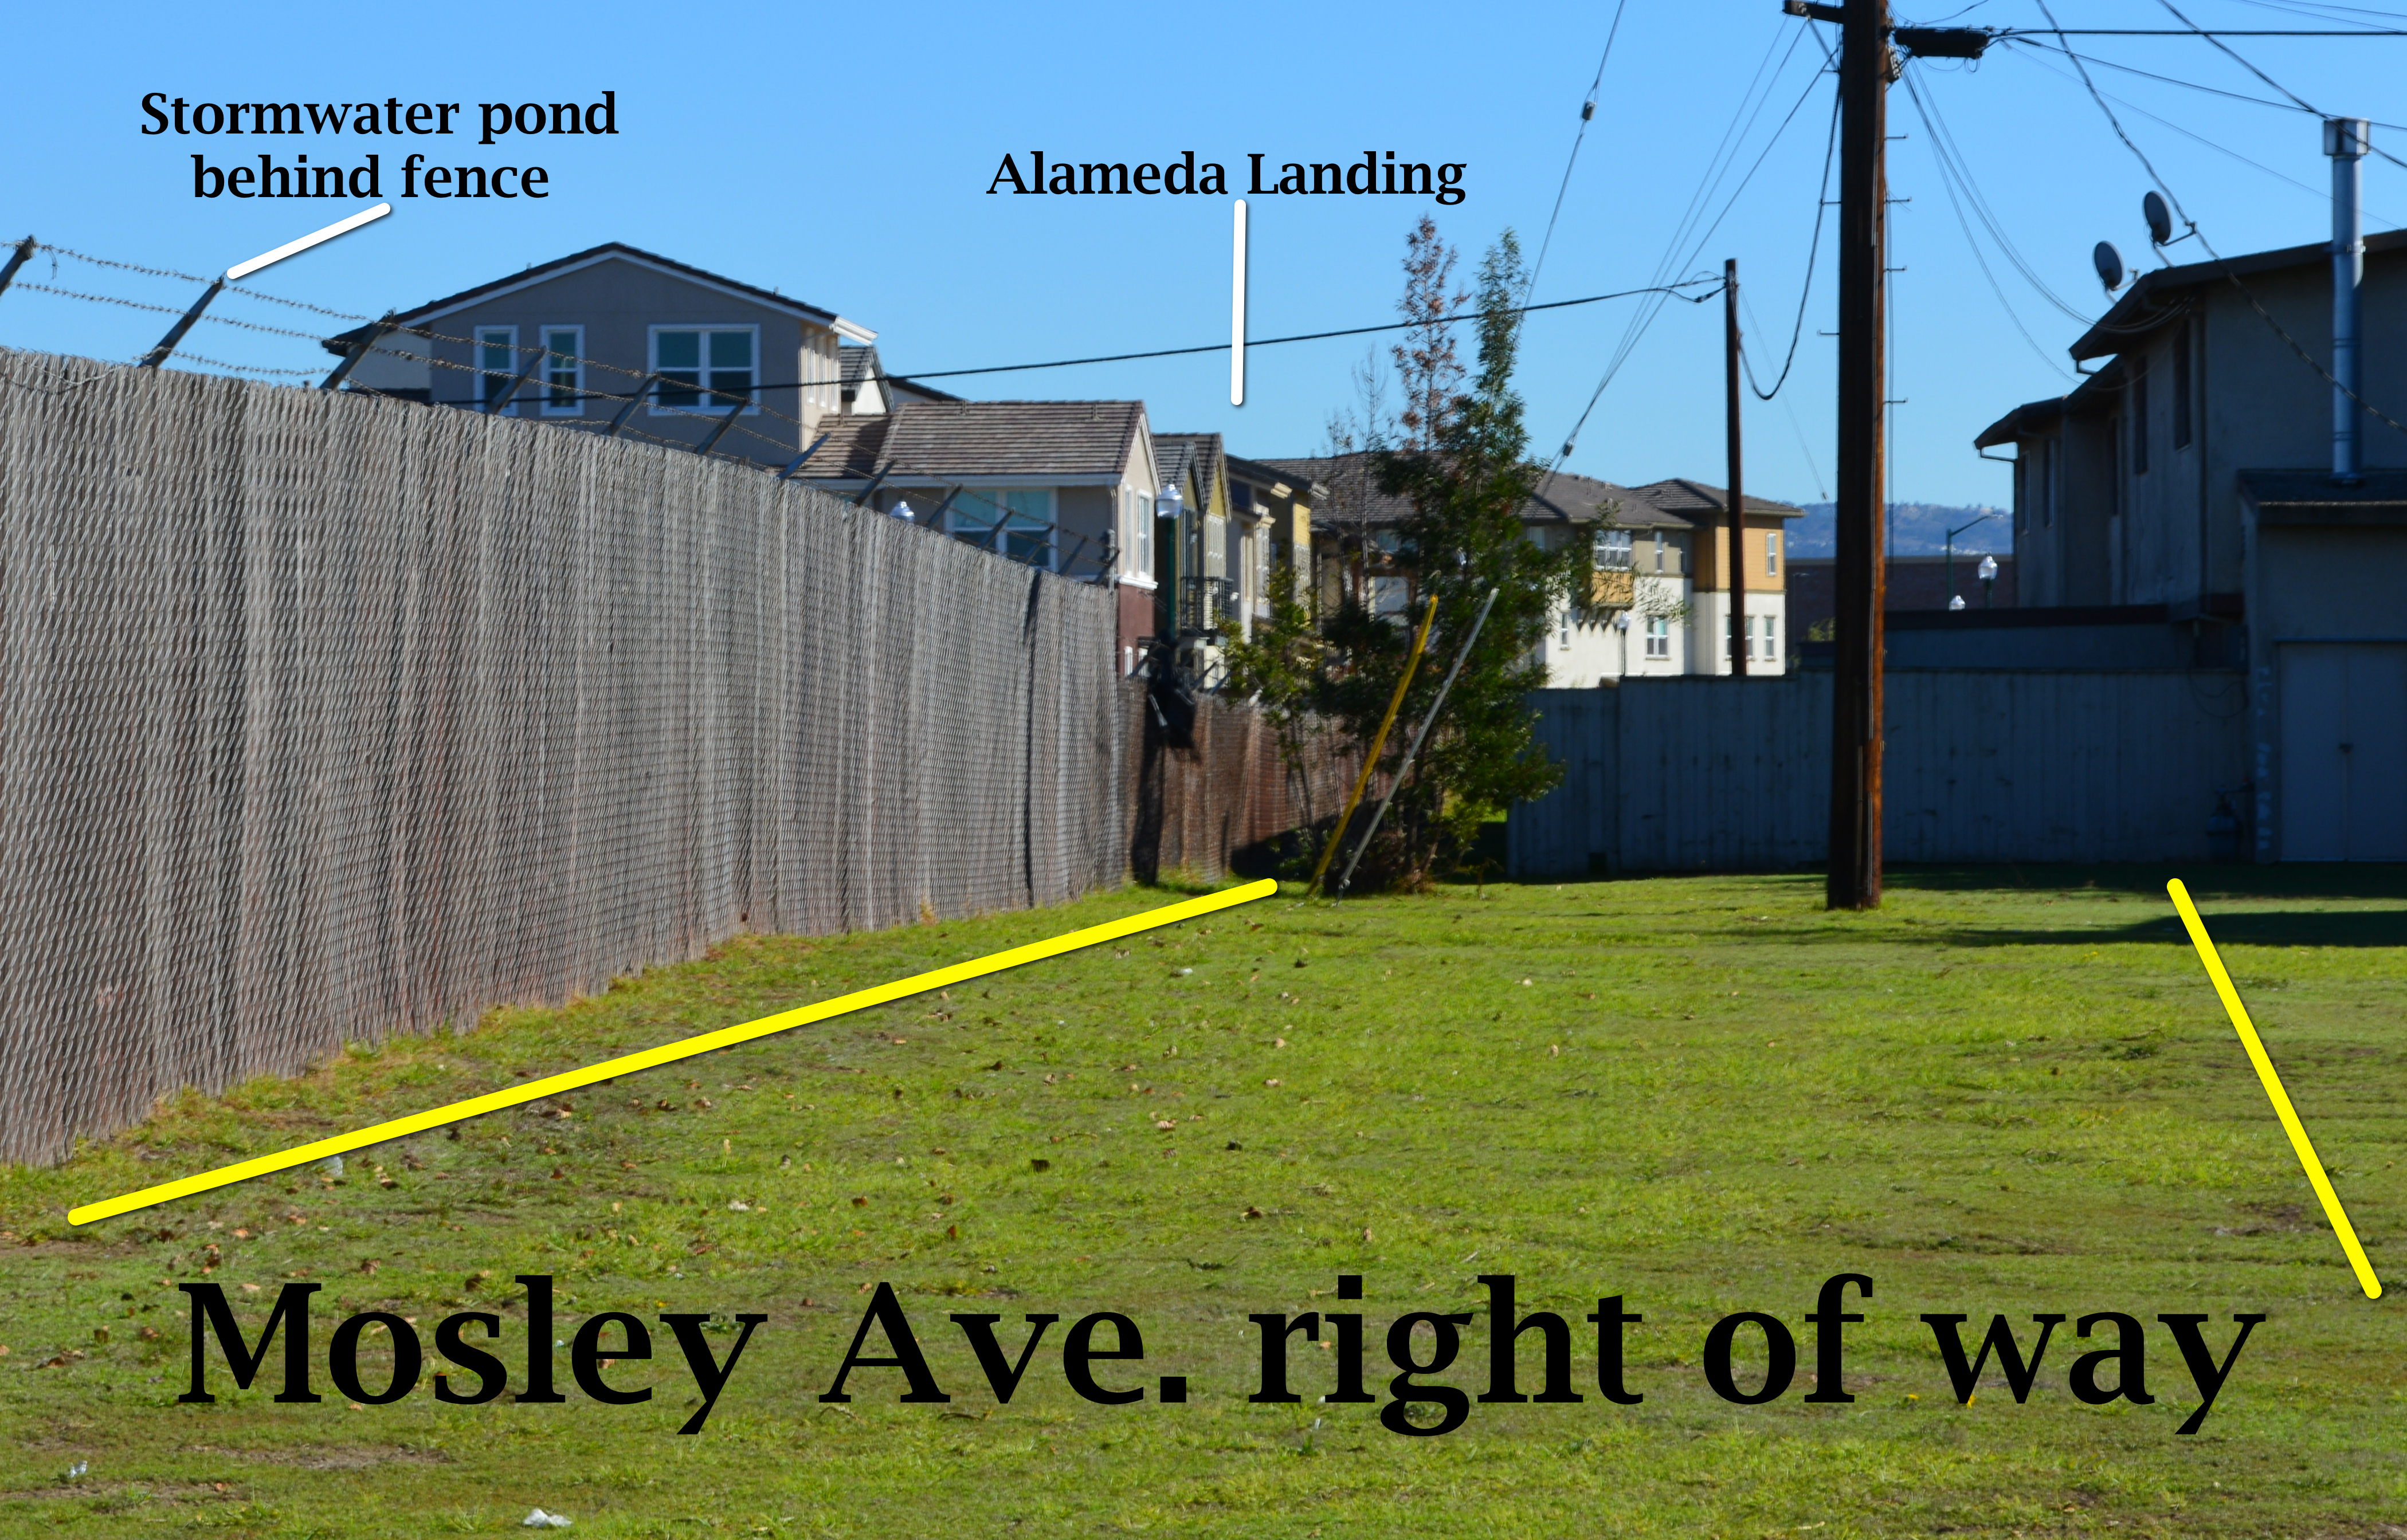 Mosley Ave. right of way